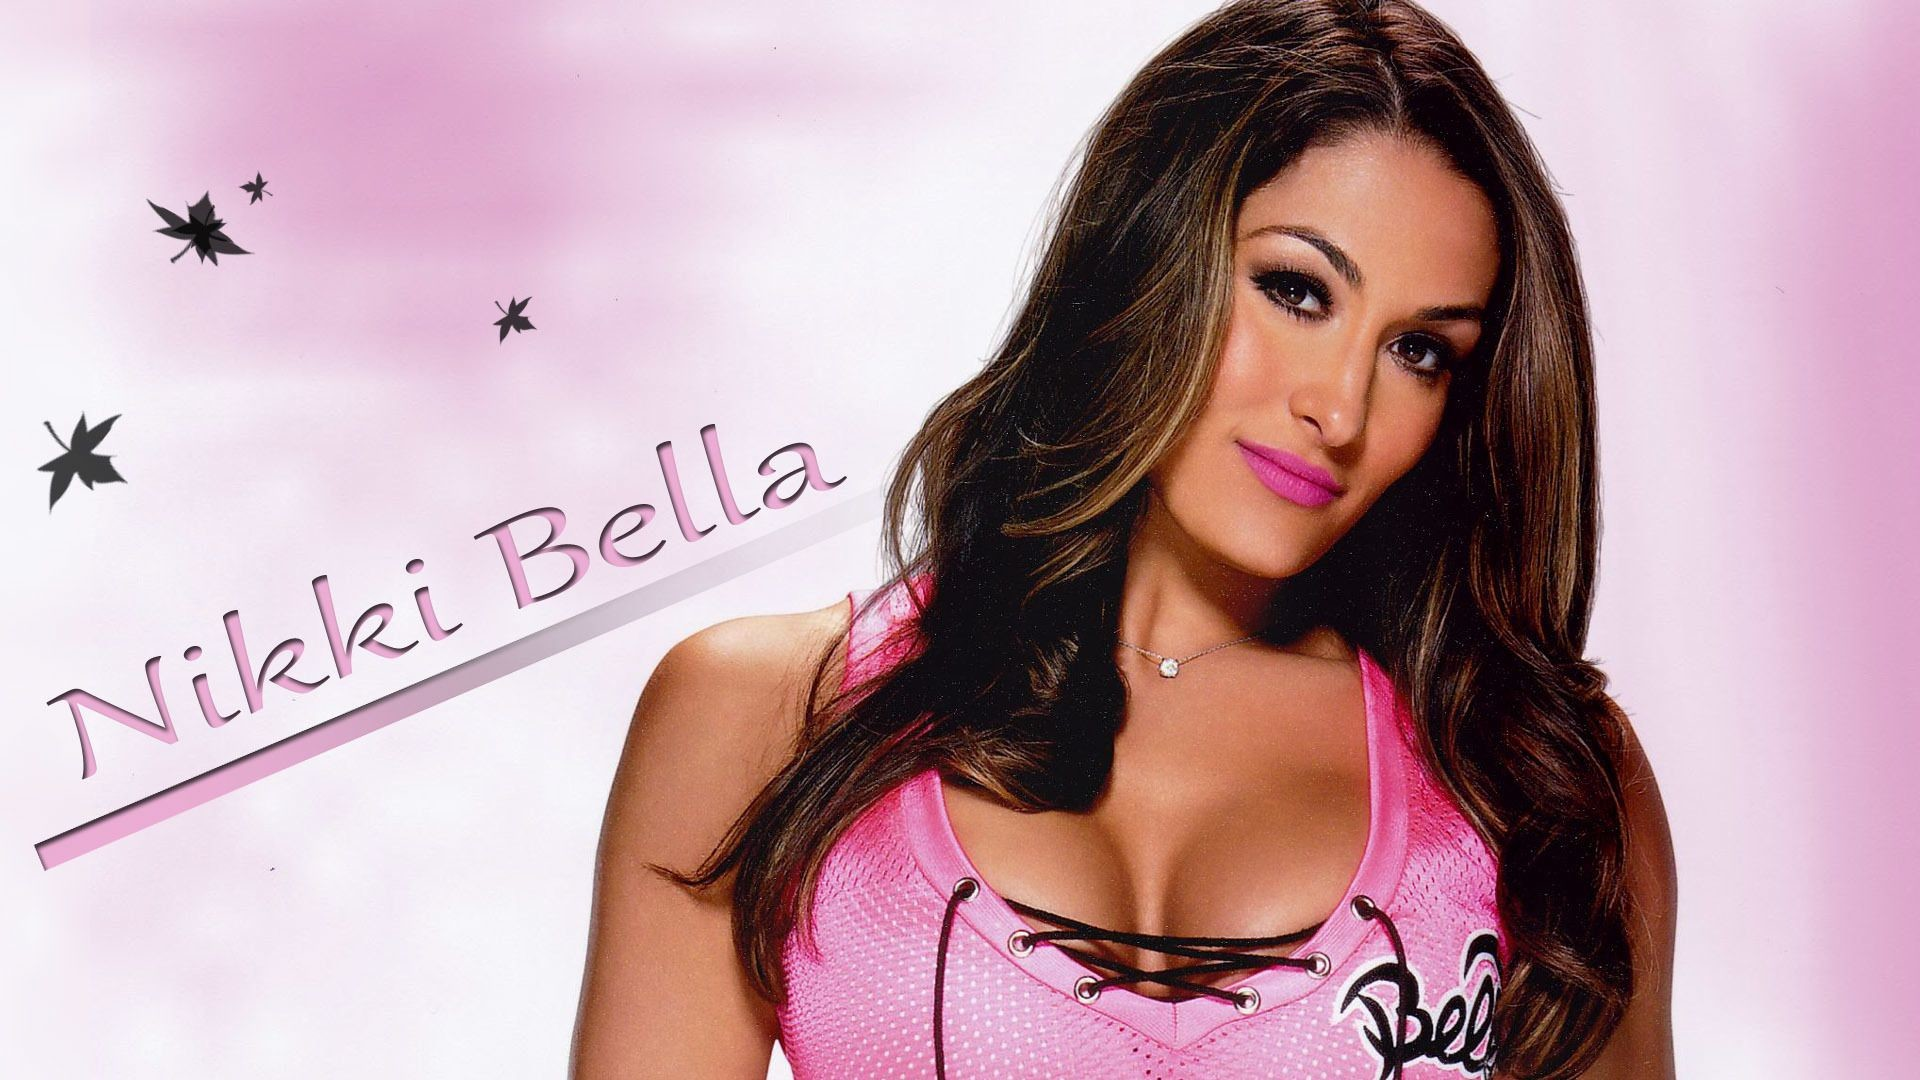 1920x1080 To Download or Set this Free Nikki Bella Wallpapers as the Desktop  Background Image for your Laptop, Macintosh or Personal Computer.